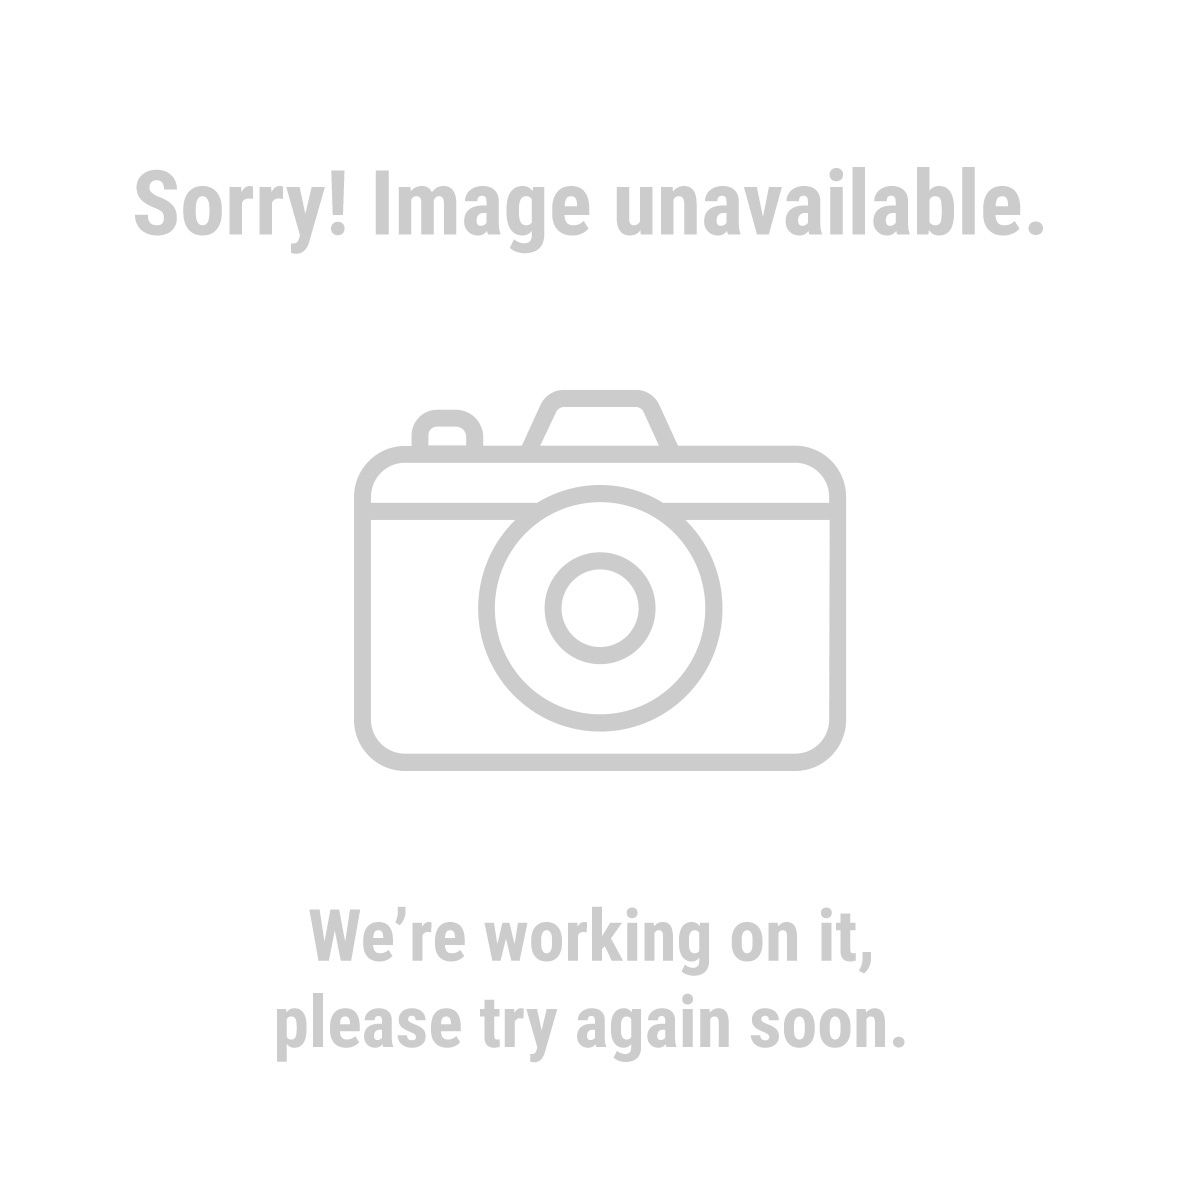 1106 4 Oz. Flexible Spout Oil Can